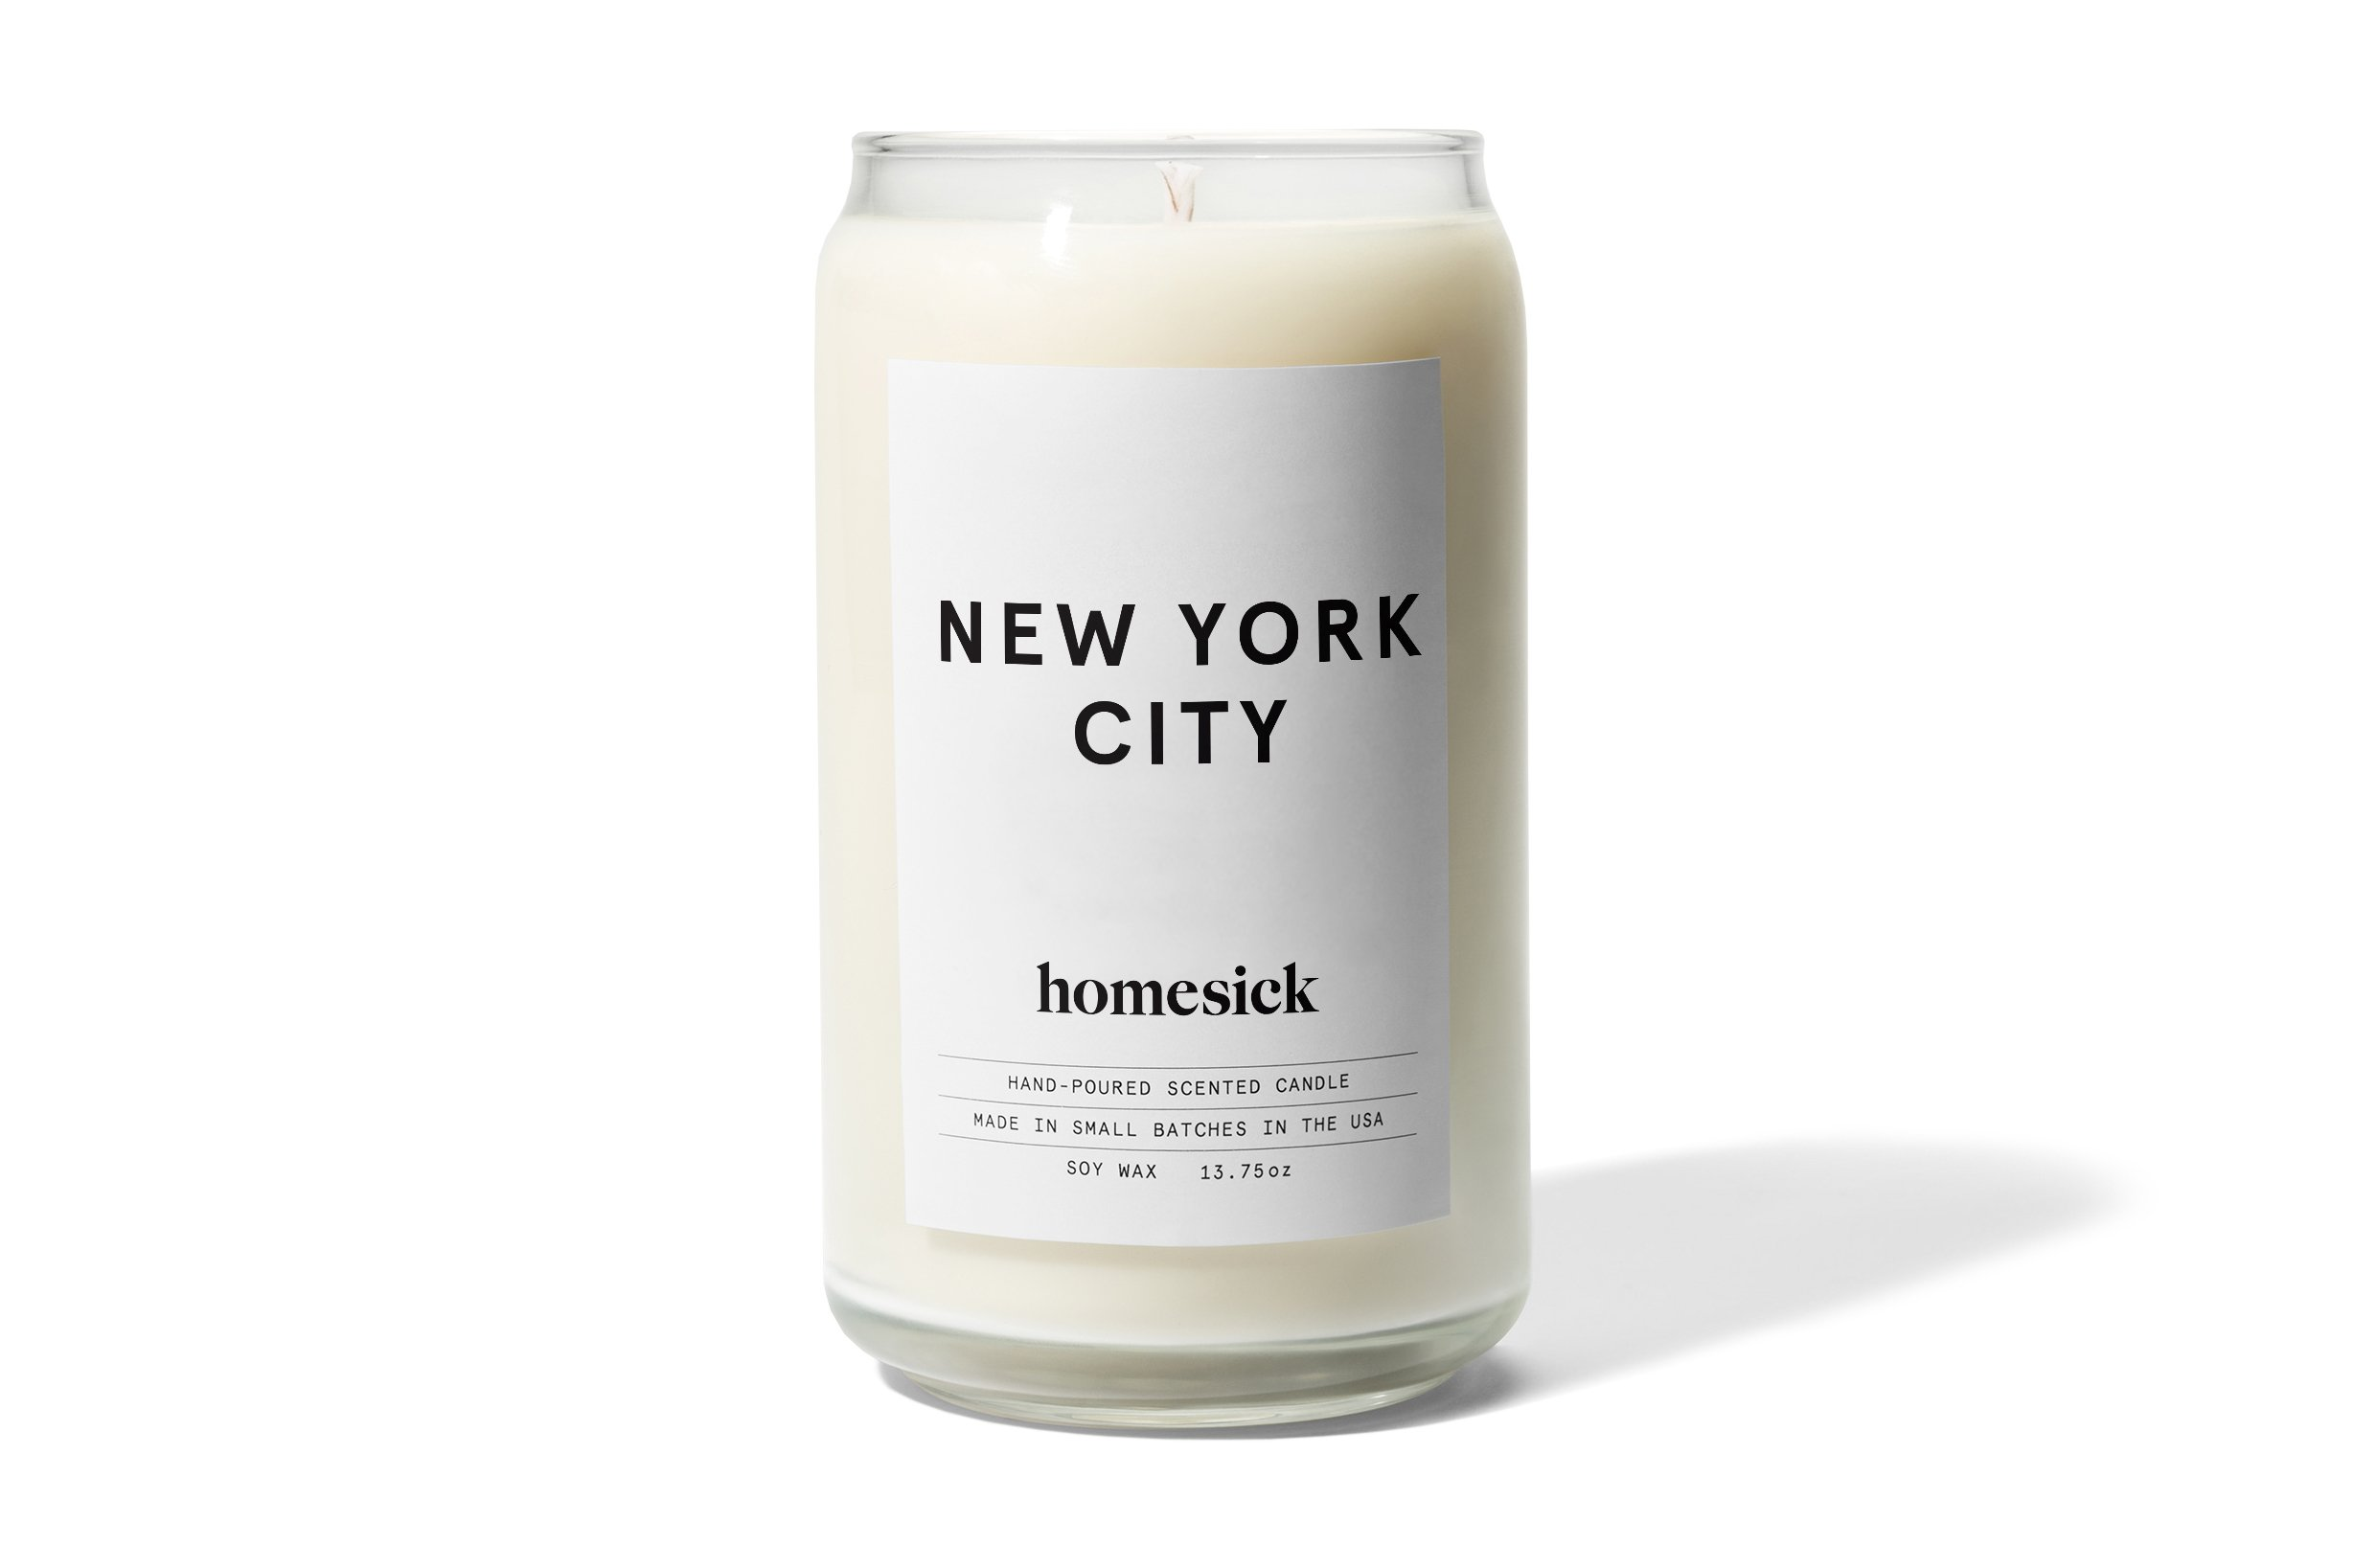 Homesick Scented Candle, New York City by Homesick